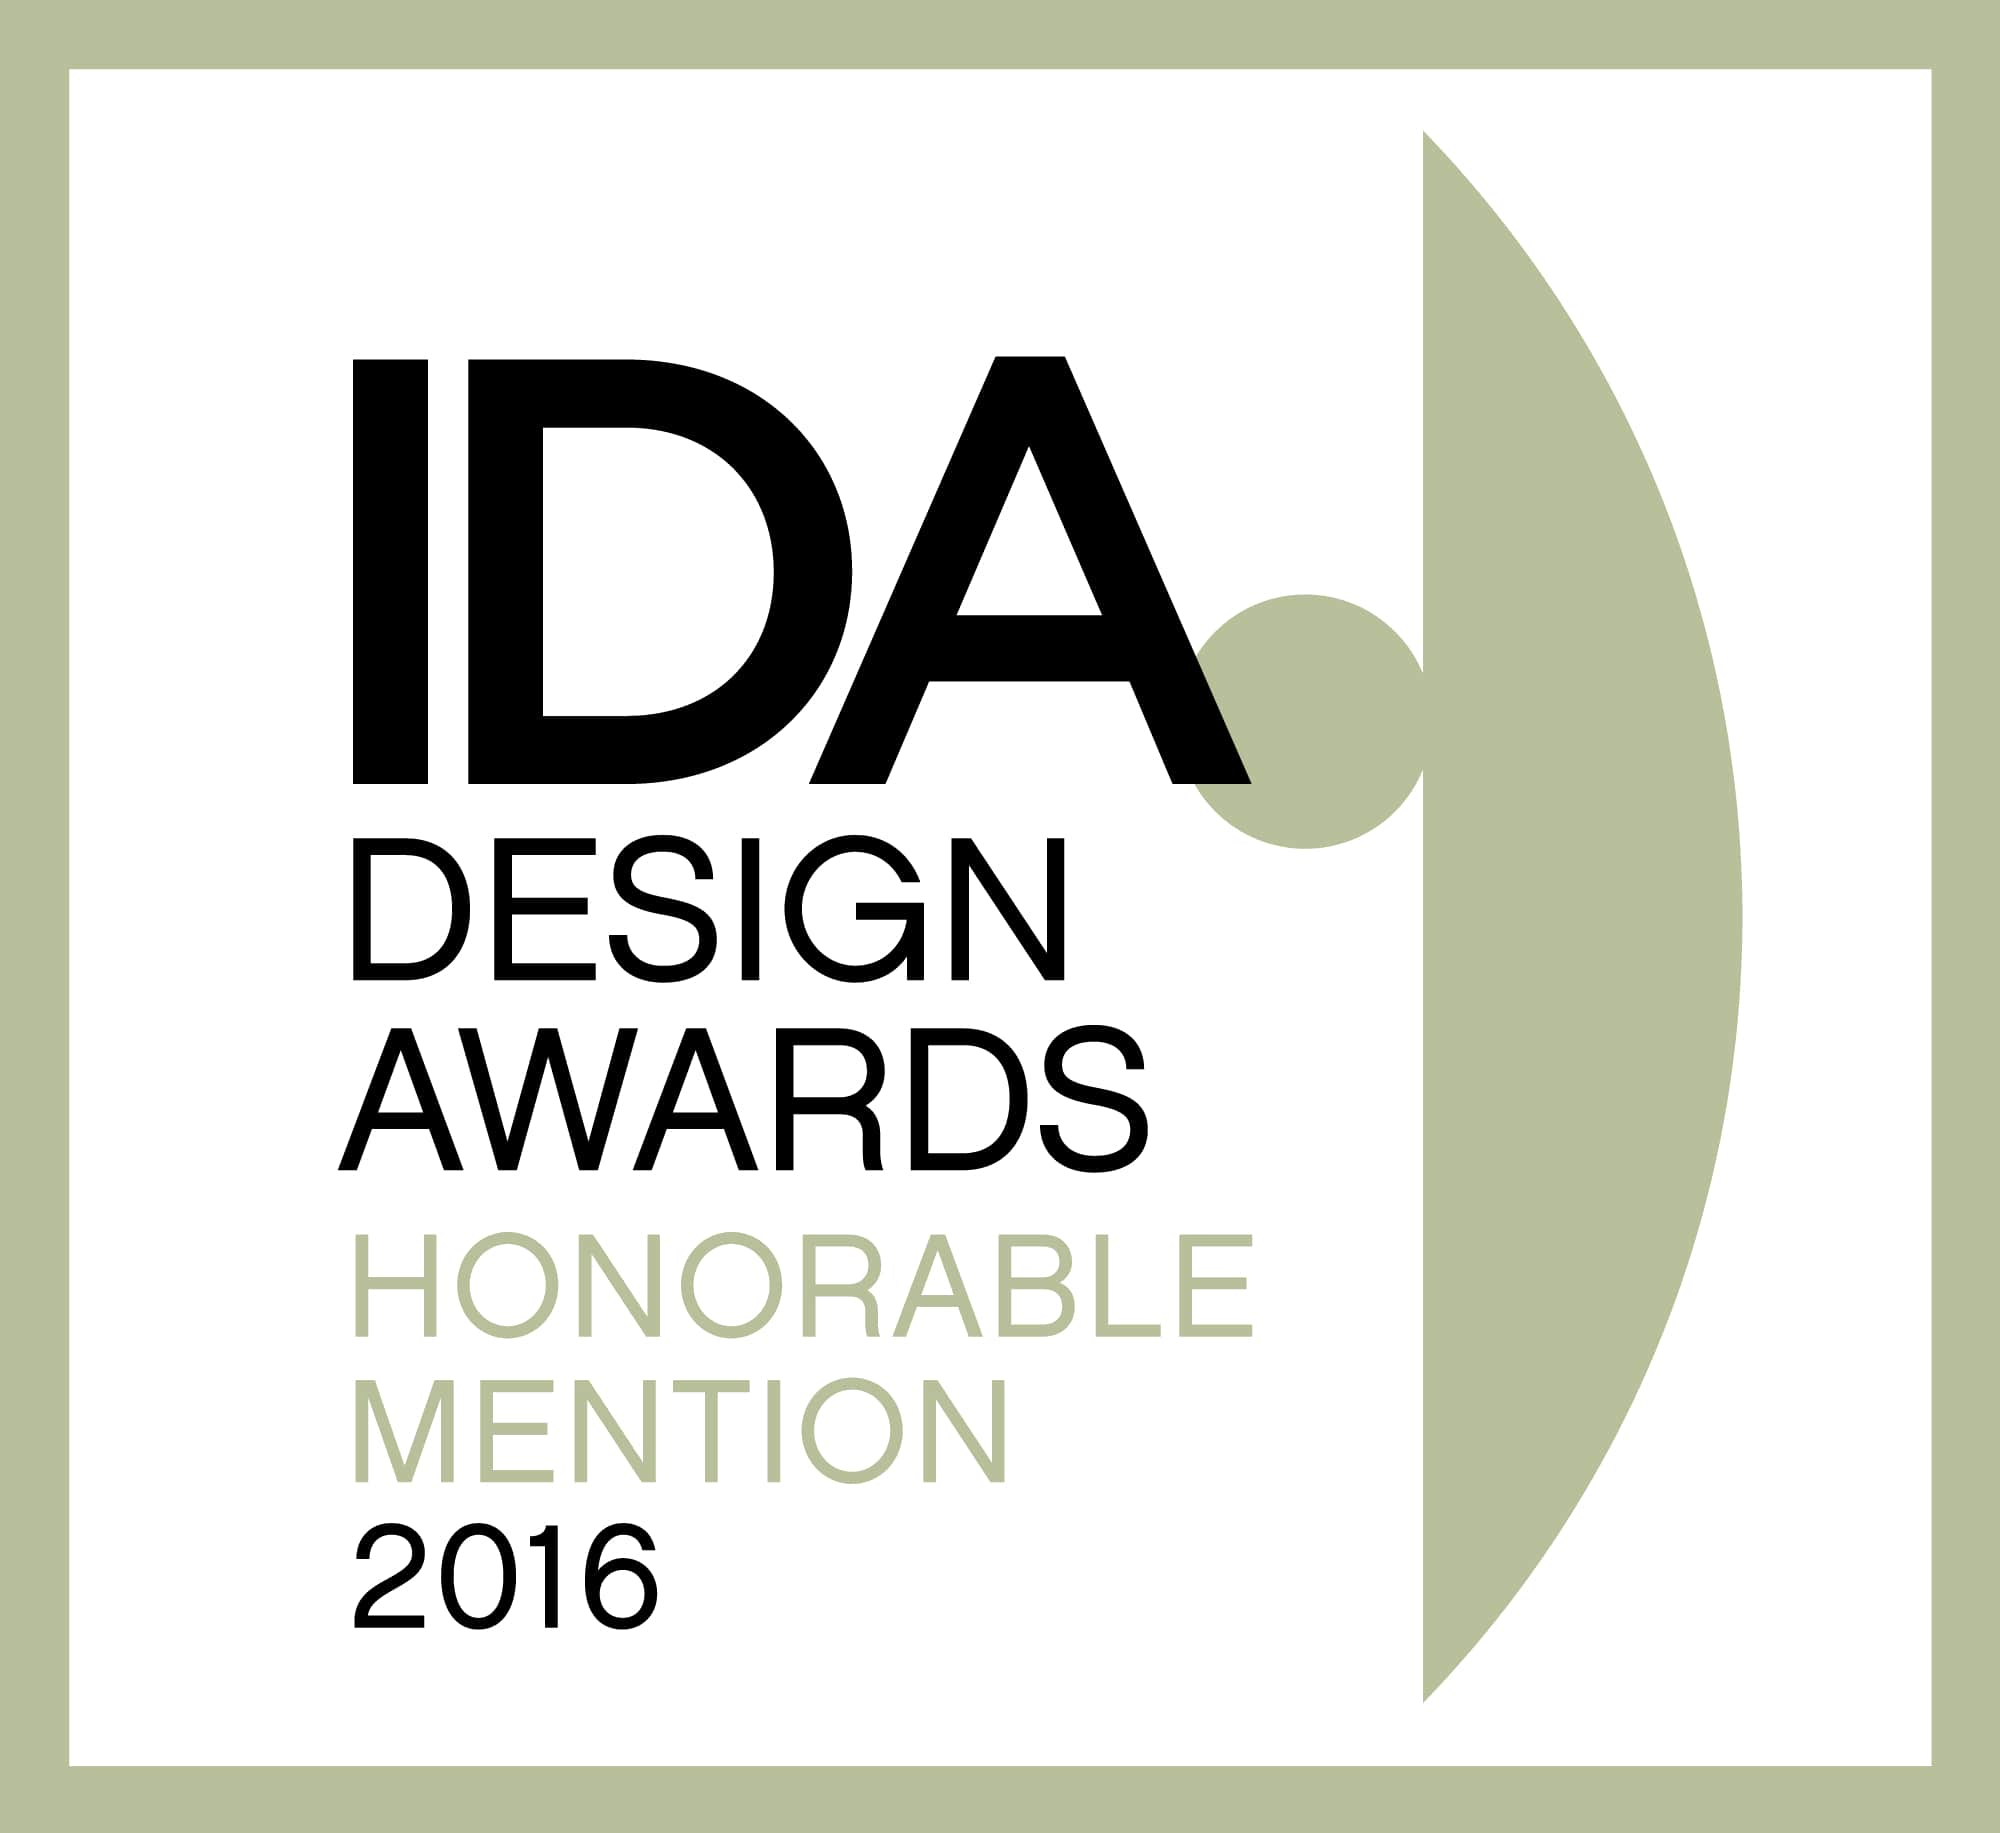 パッケージデザイン賞 受賞 The IDA International Design Awards 2016 Honorable Mention(アメリカ)